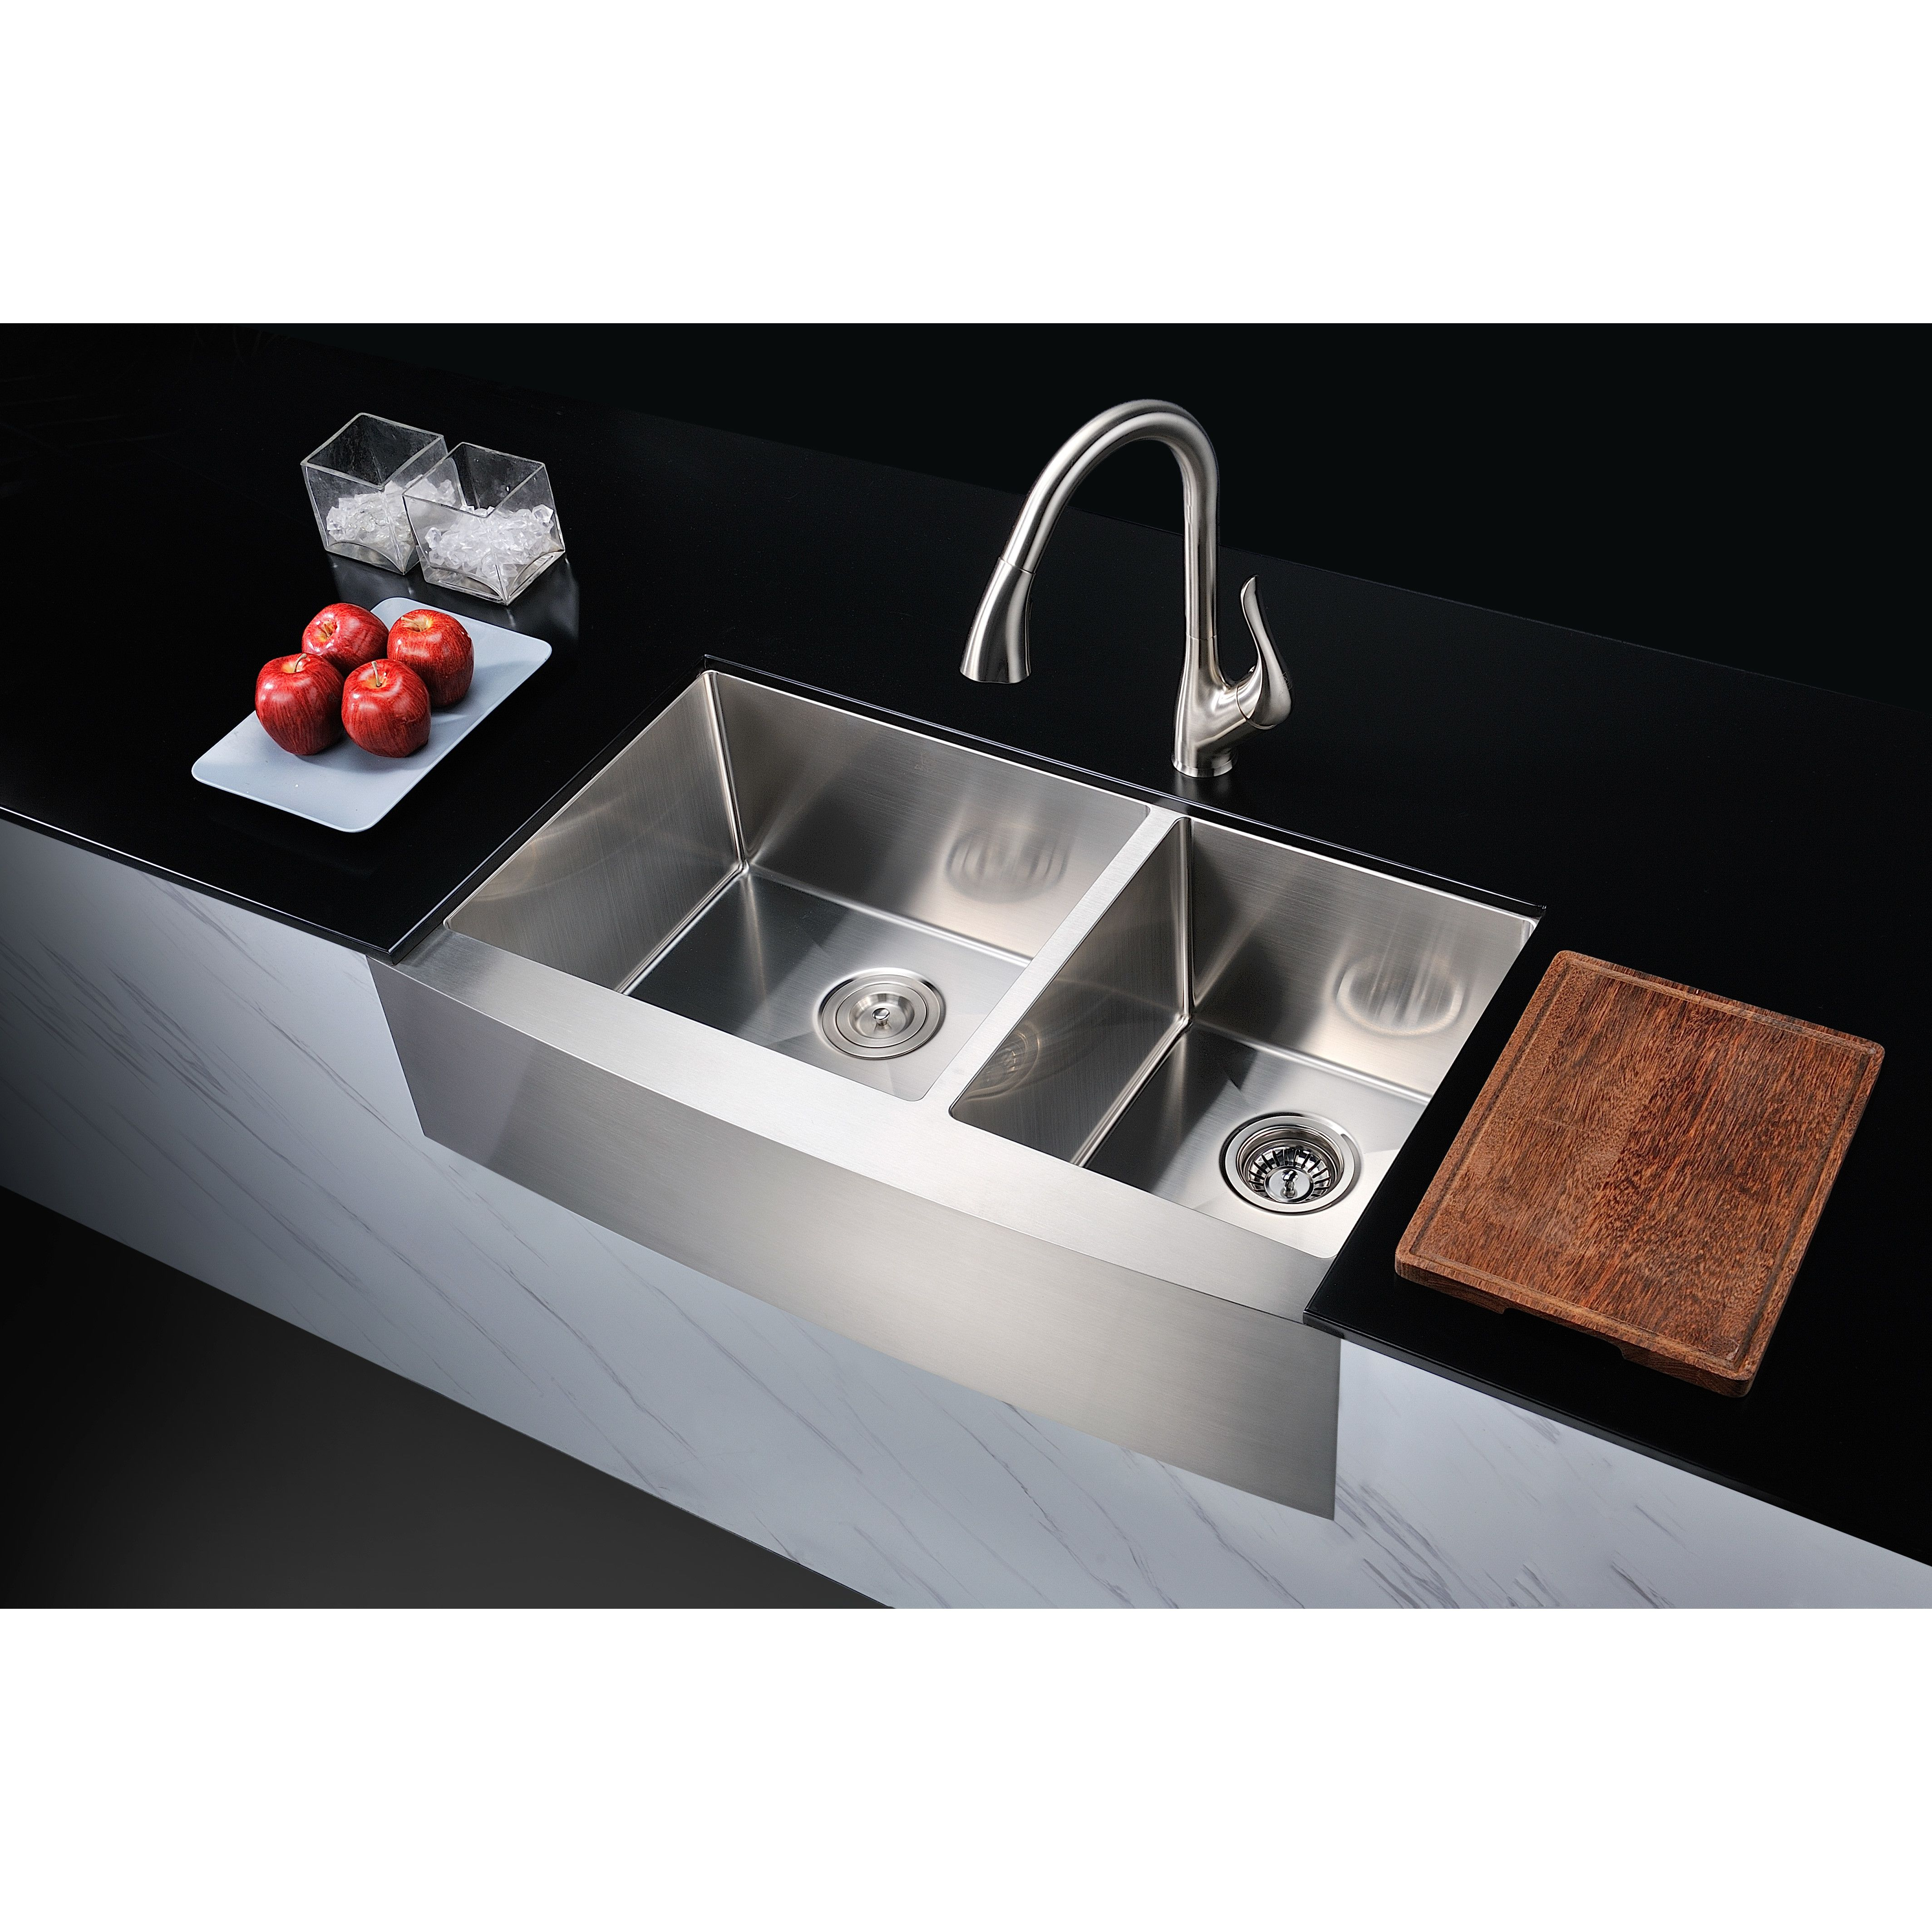 Anzzi elysian 3588 x 2075 double bowl farmhouse kitchen sink anzzi elysian 3588 x 2075 double bowl farmhouse kitchen sink with drain assembly workwithnaturefo